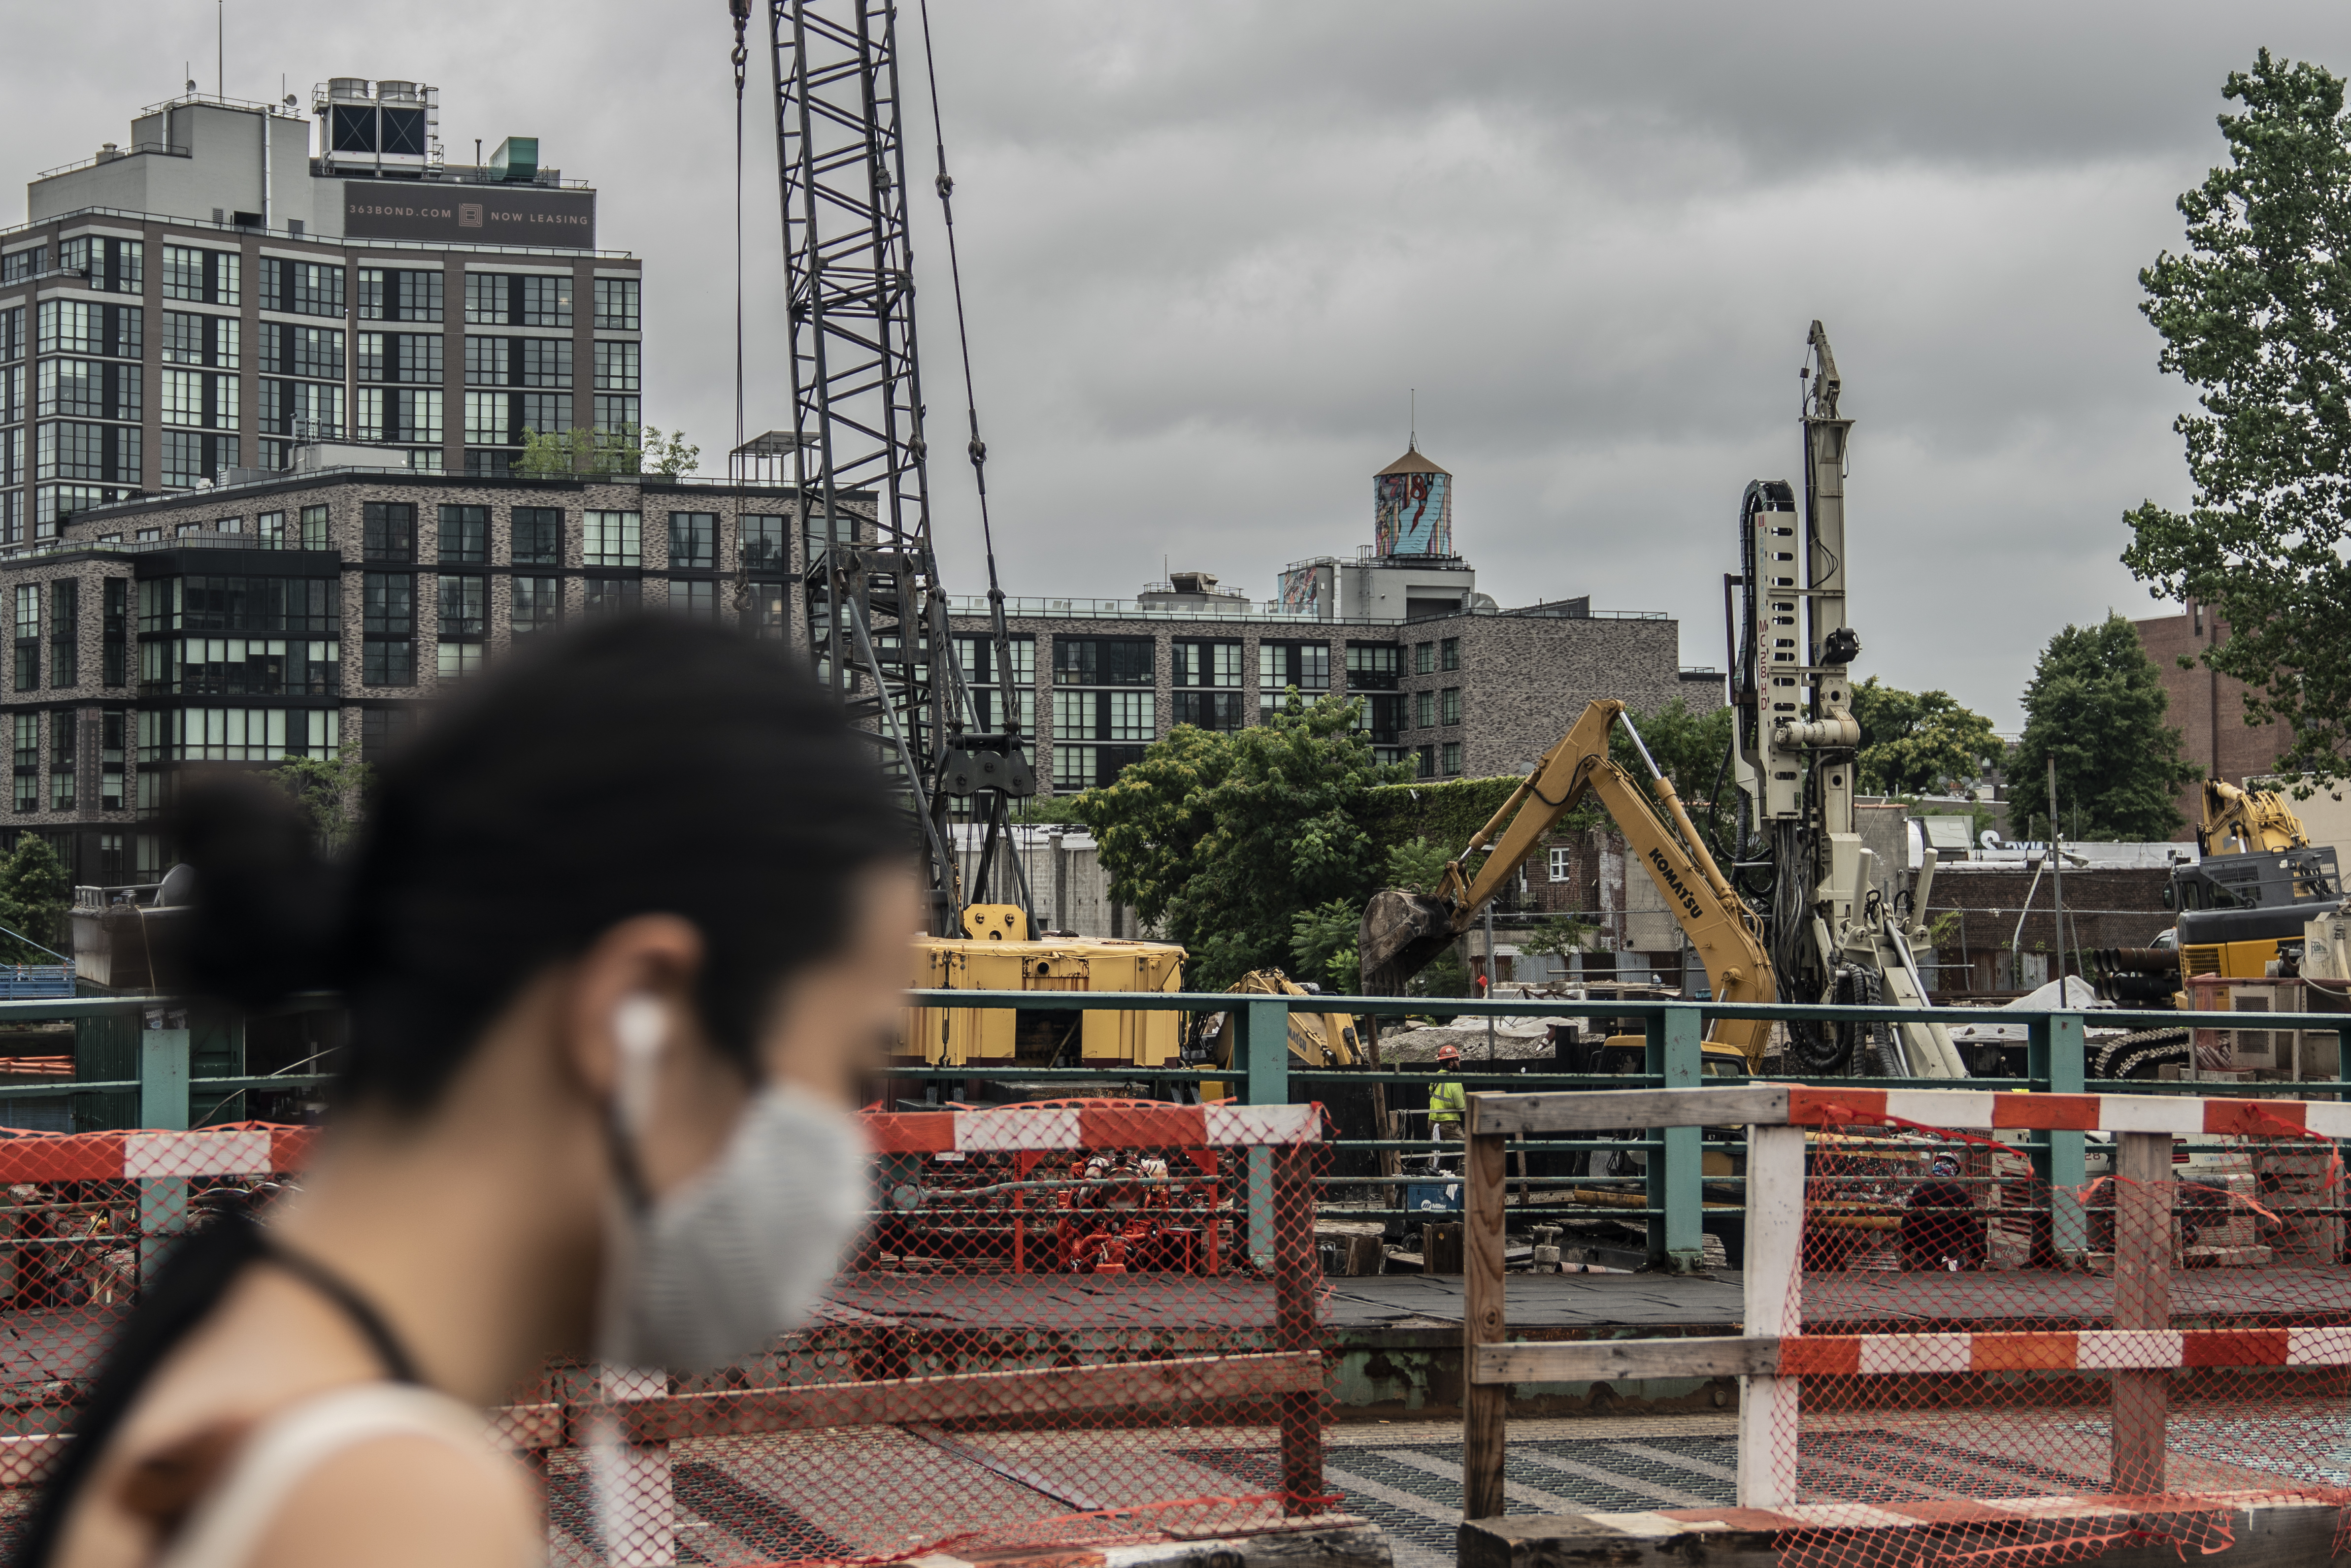 A person walks past construction around the Gowanus Canal, July 10, 2020.